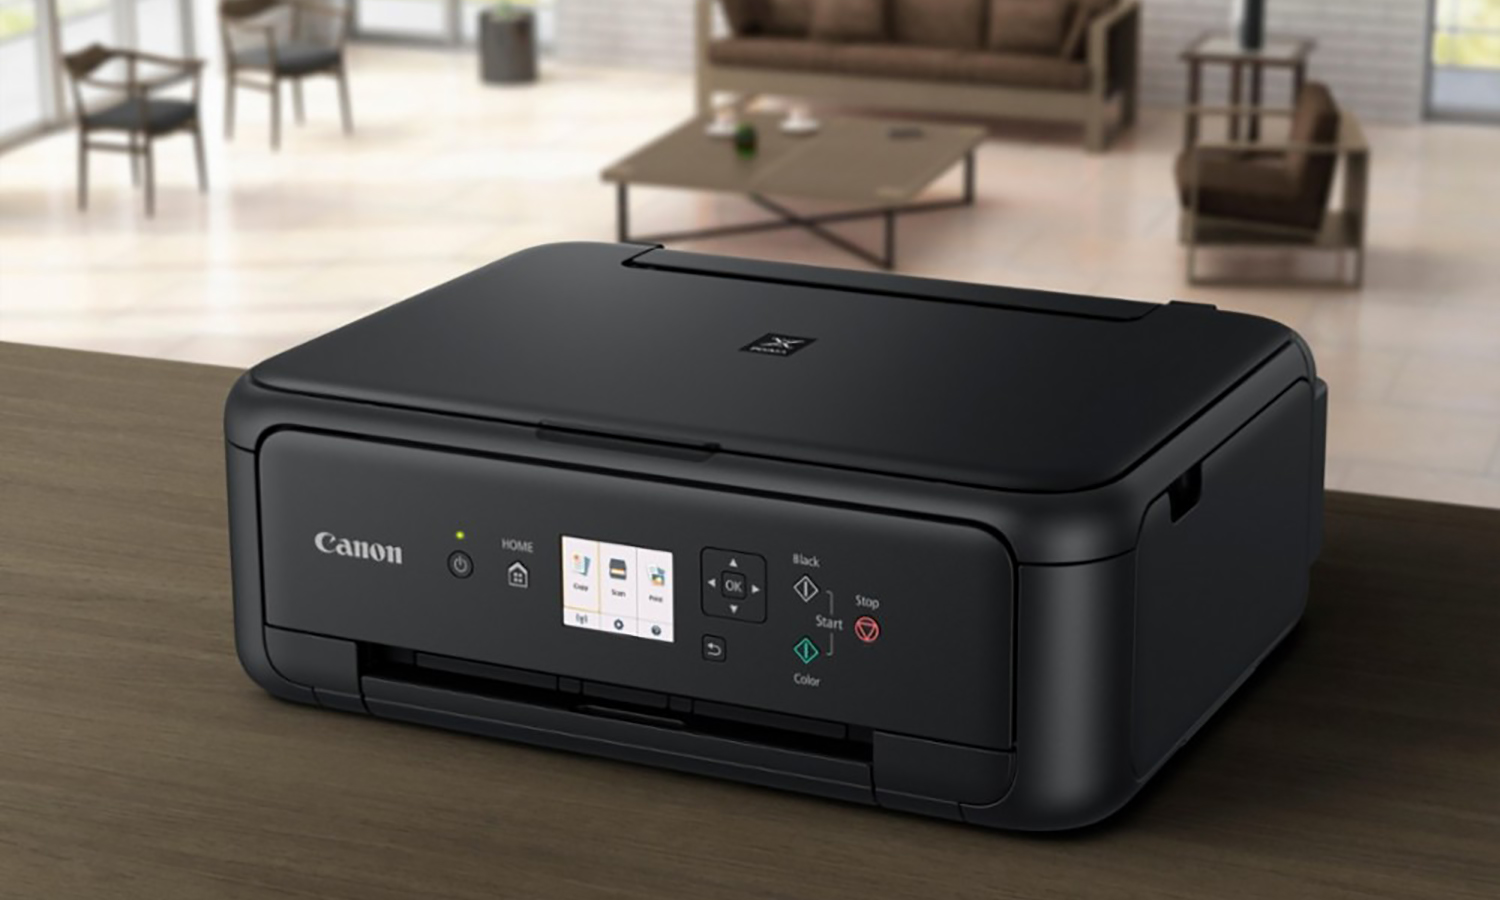 Canon Pixma Ts5120 Review A Good But Not Great Budget All